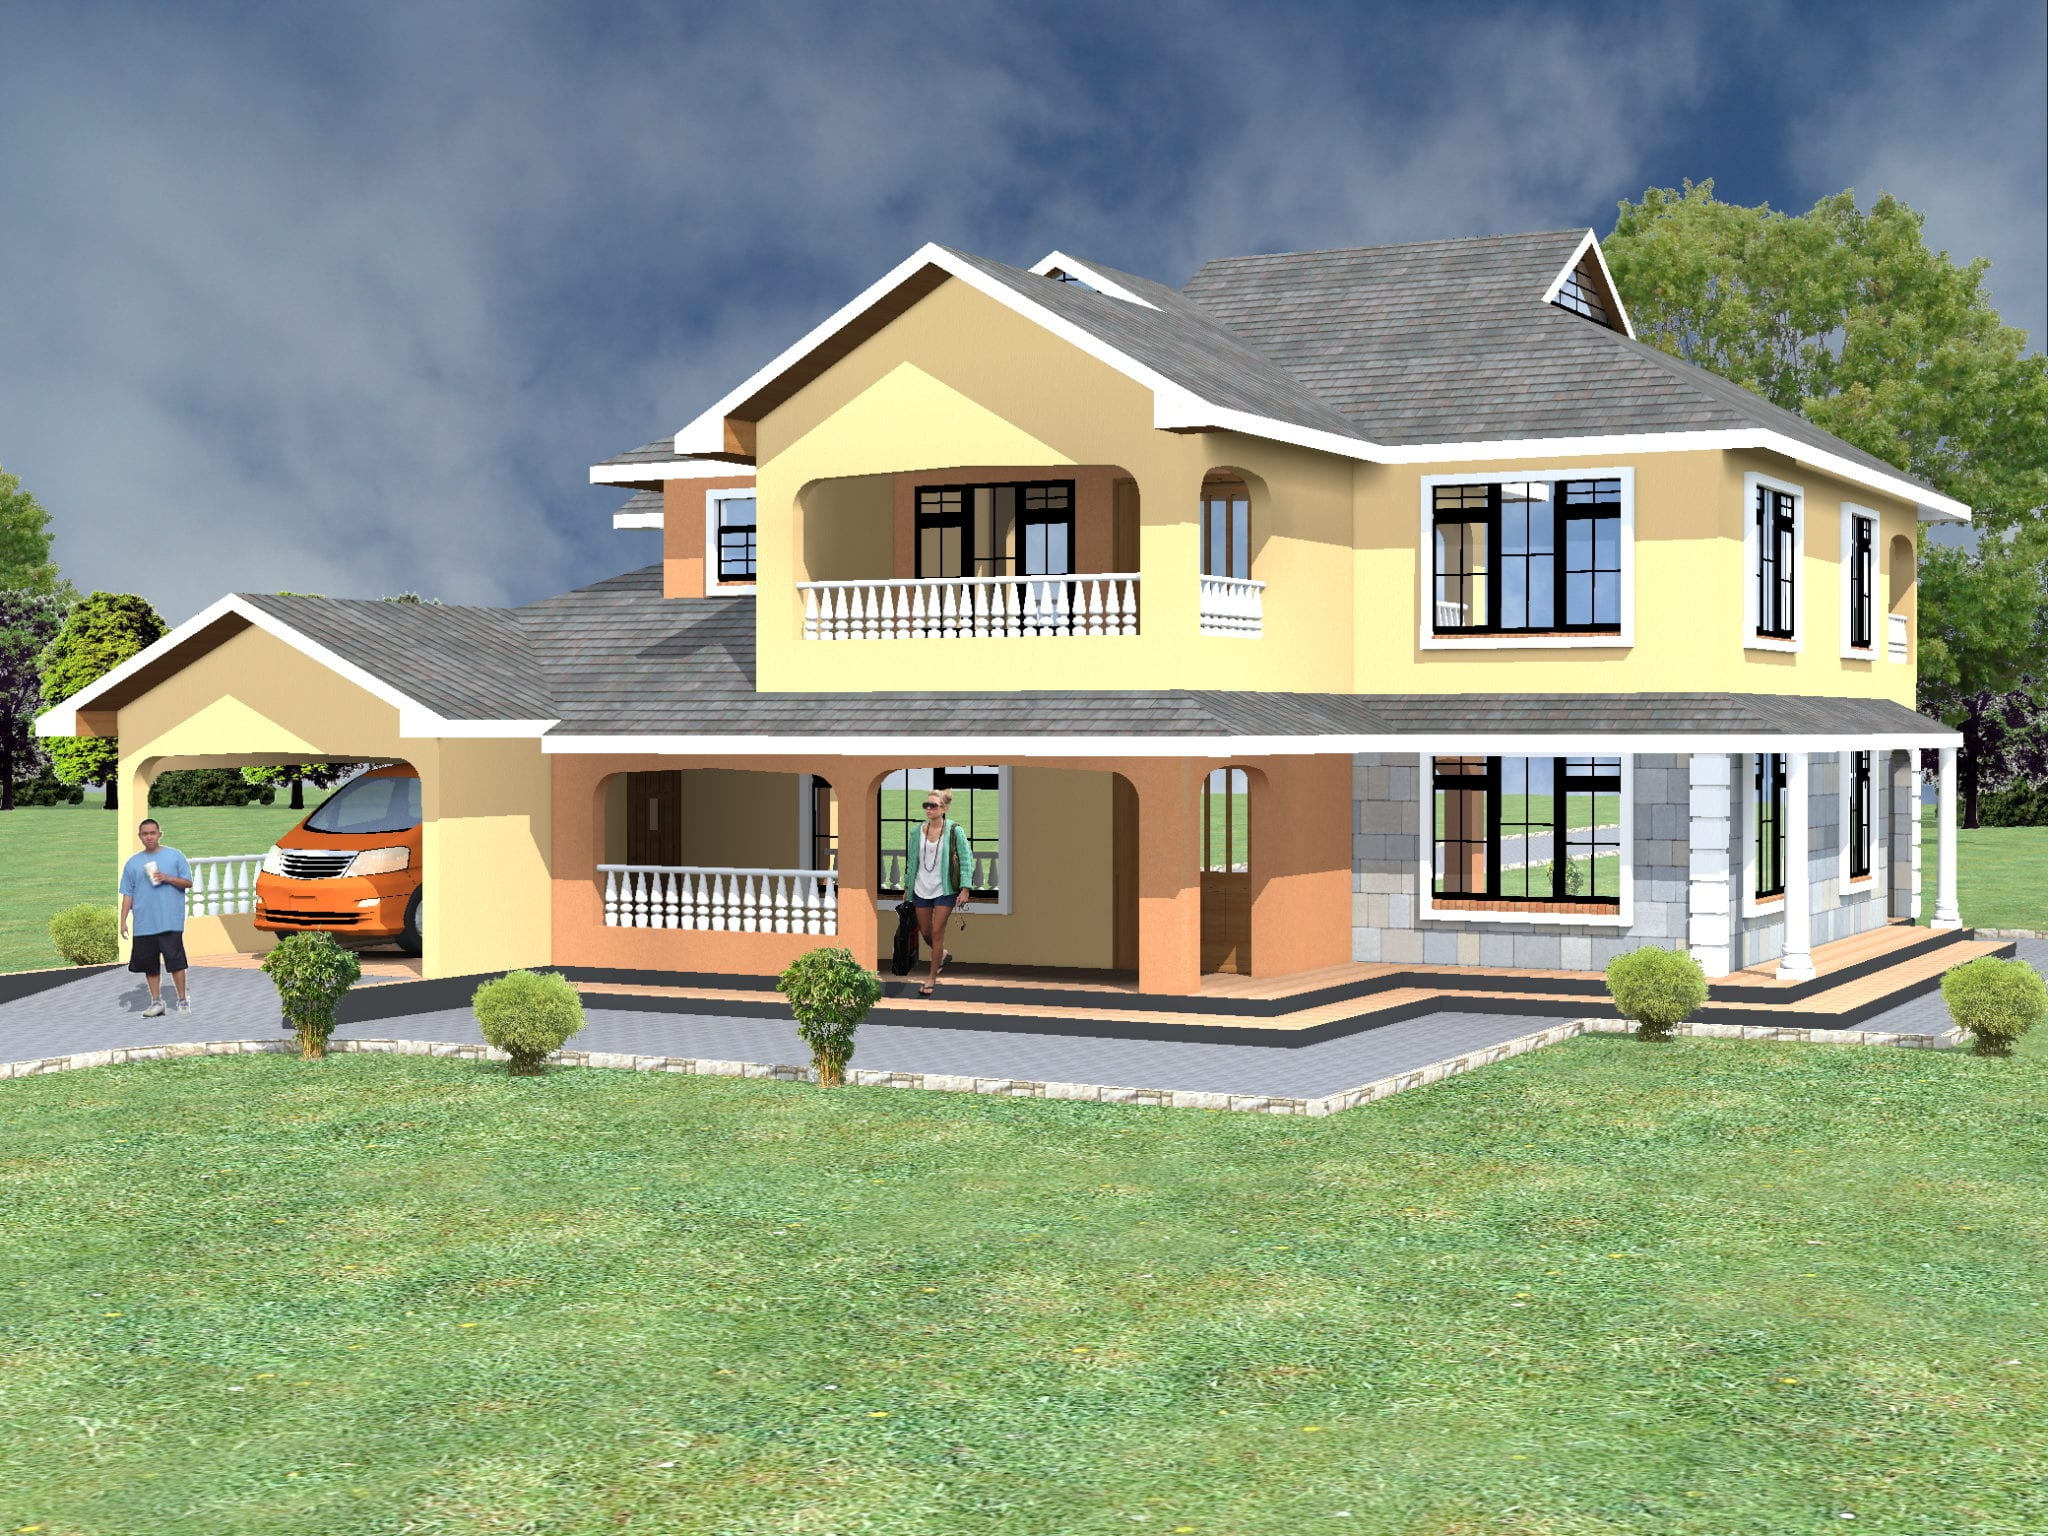 Maisonette House Plans 4 Bedroom in Kenya | HPD Consult